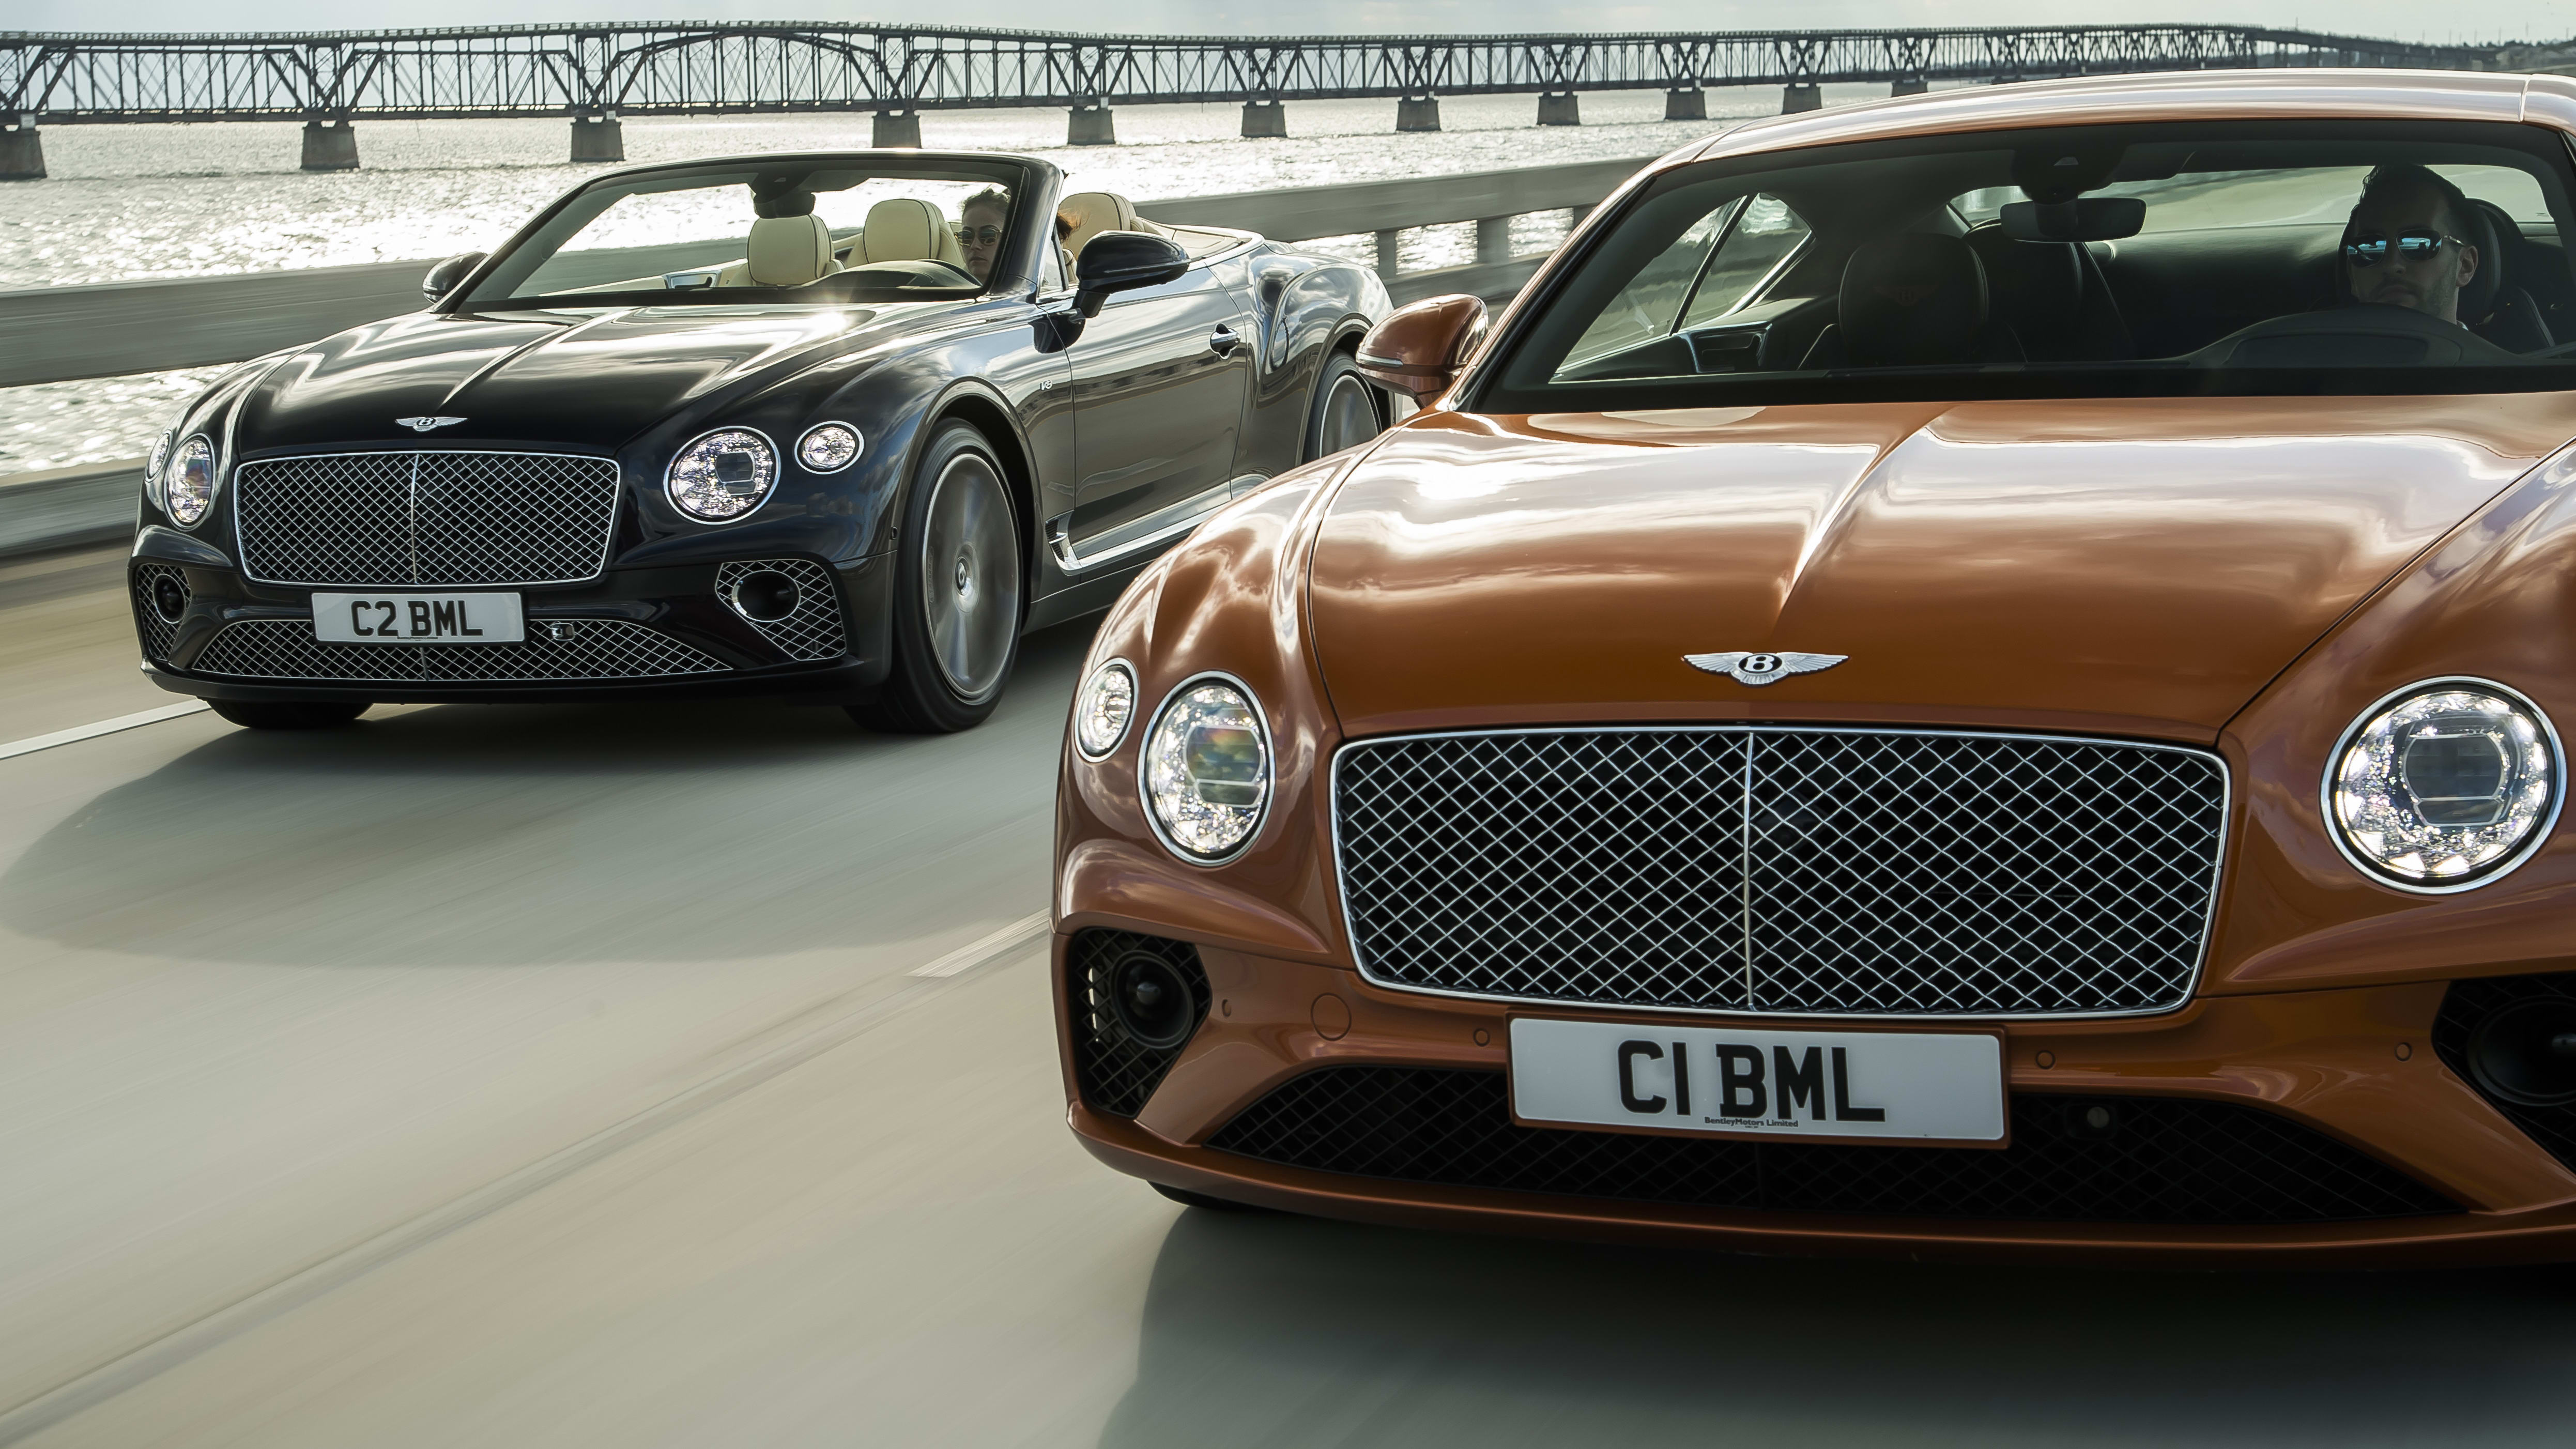 2020 Bentley Continental Gt V8 Coupe And Convertible Pricing And Specs Caradvice